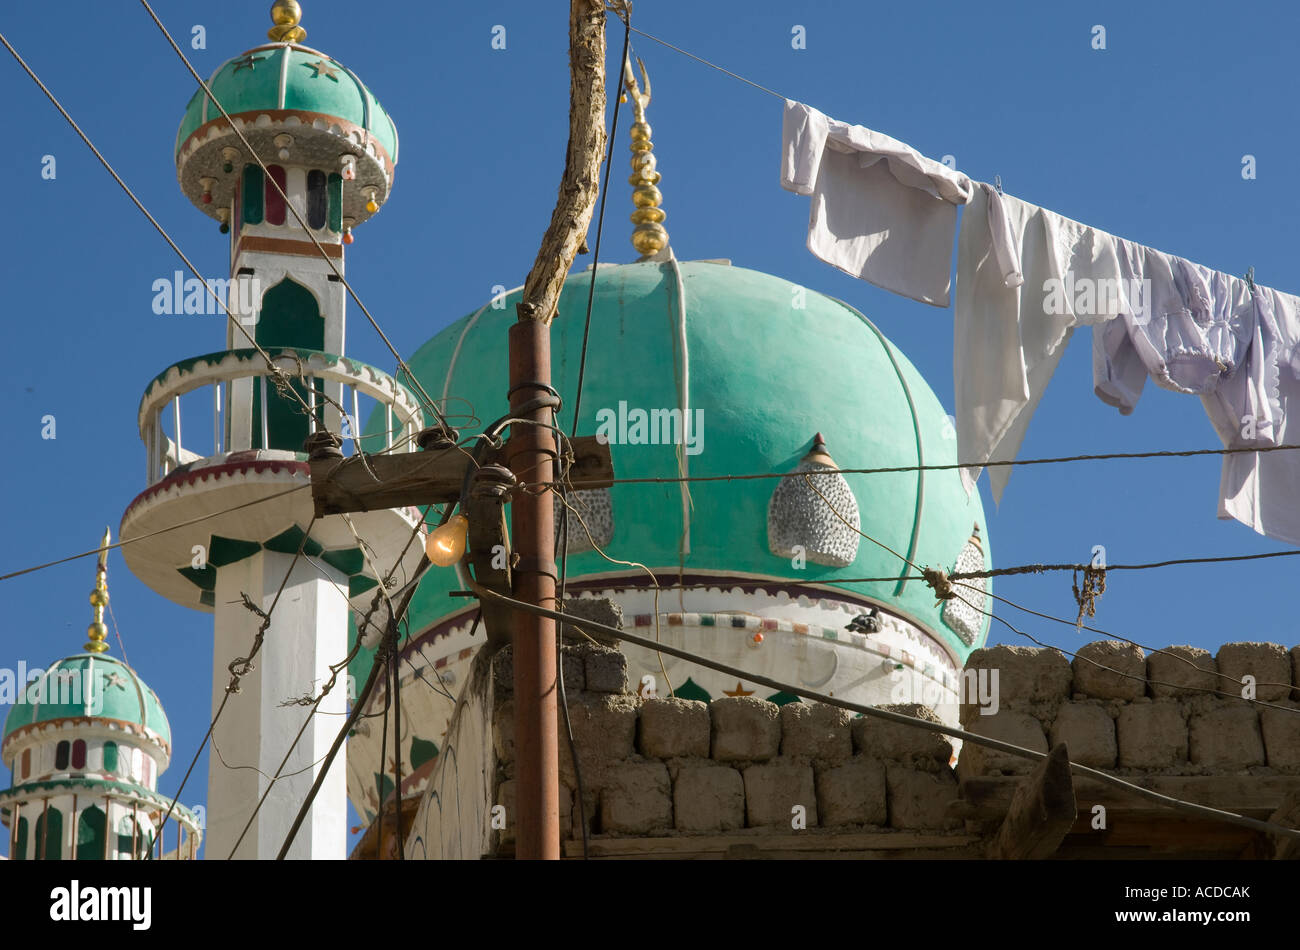 India Himalaya Jammu and Kashmir Ladakh Leh Shiite mosque view with laundry hanging in frgd - Stock Image